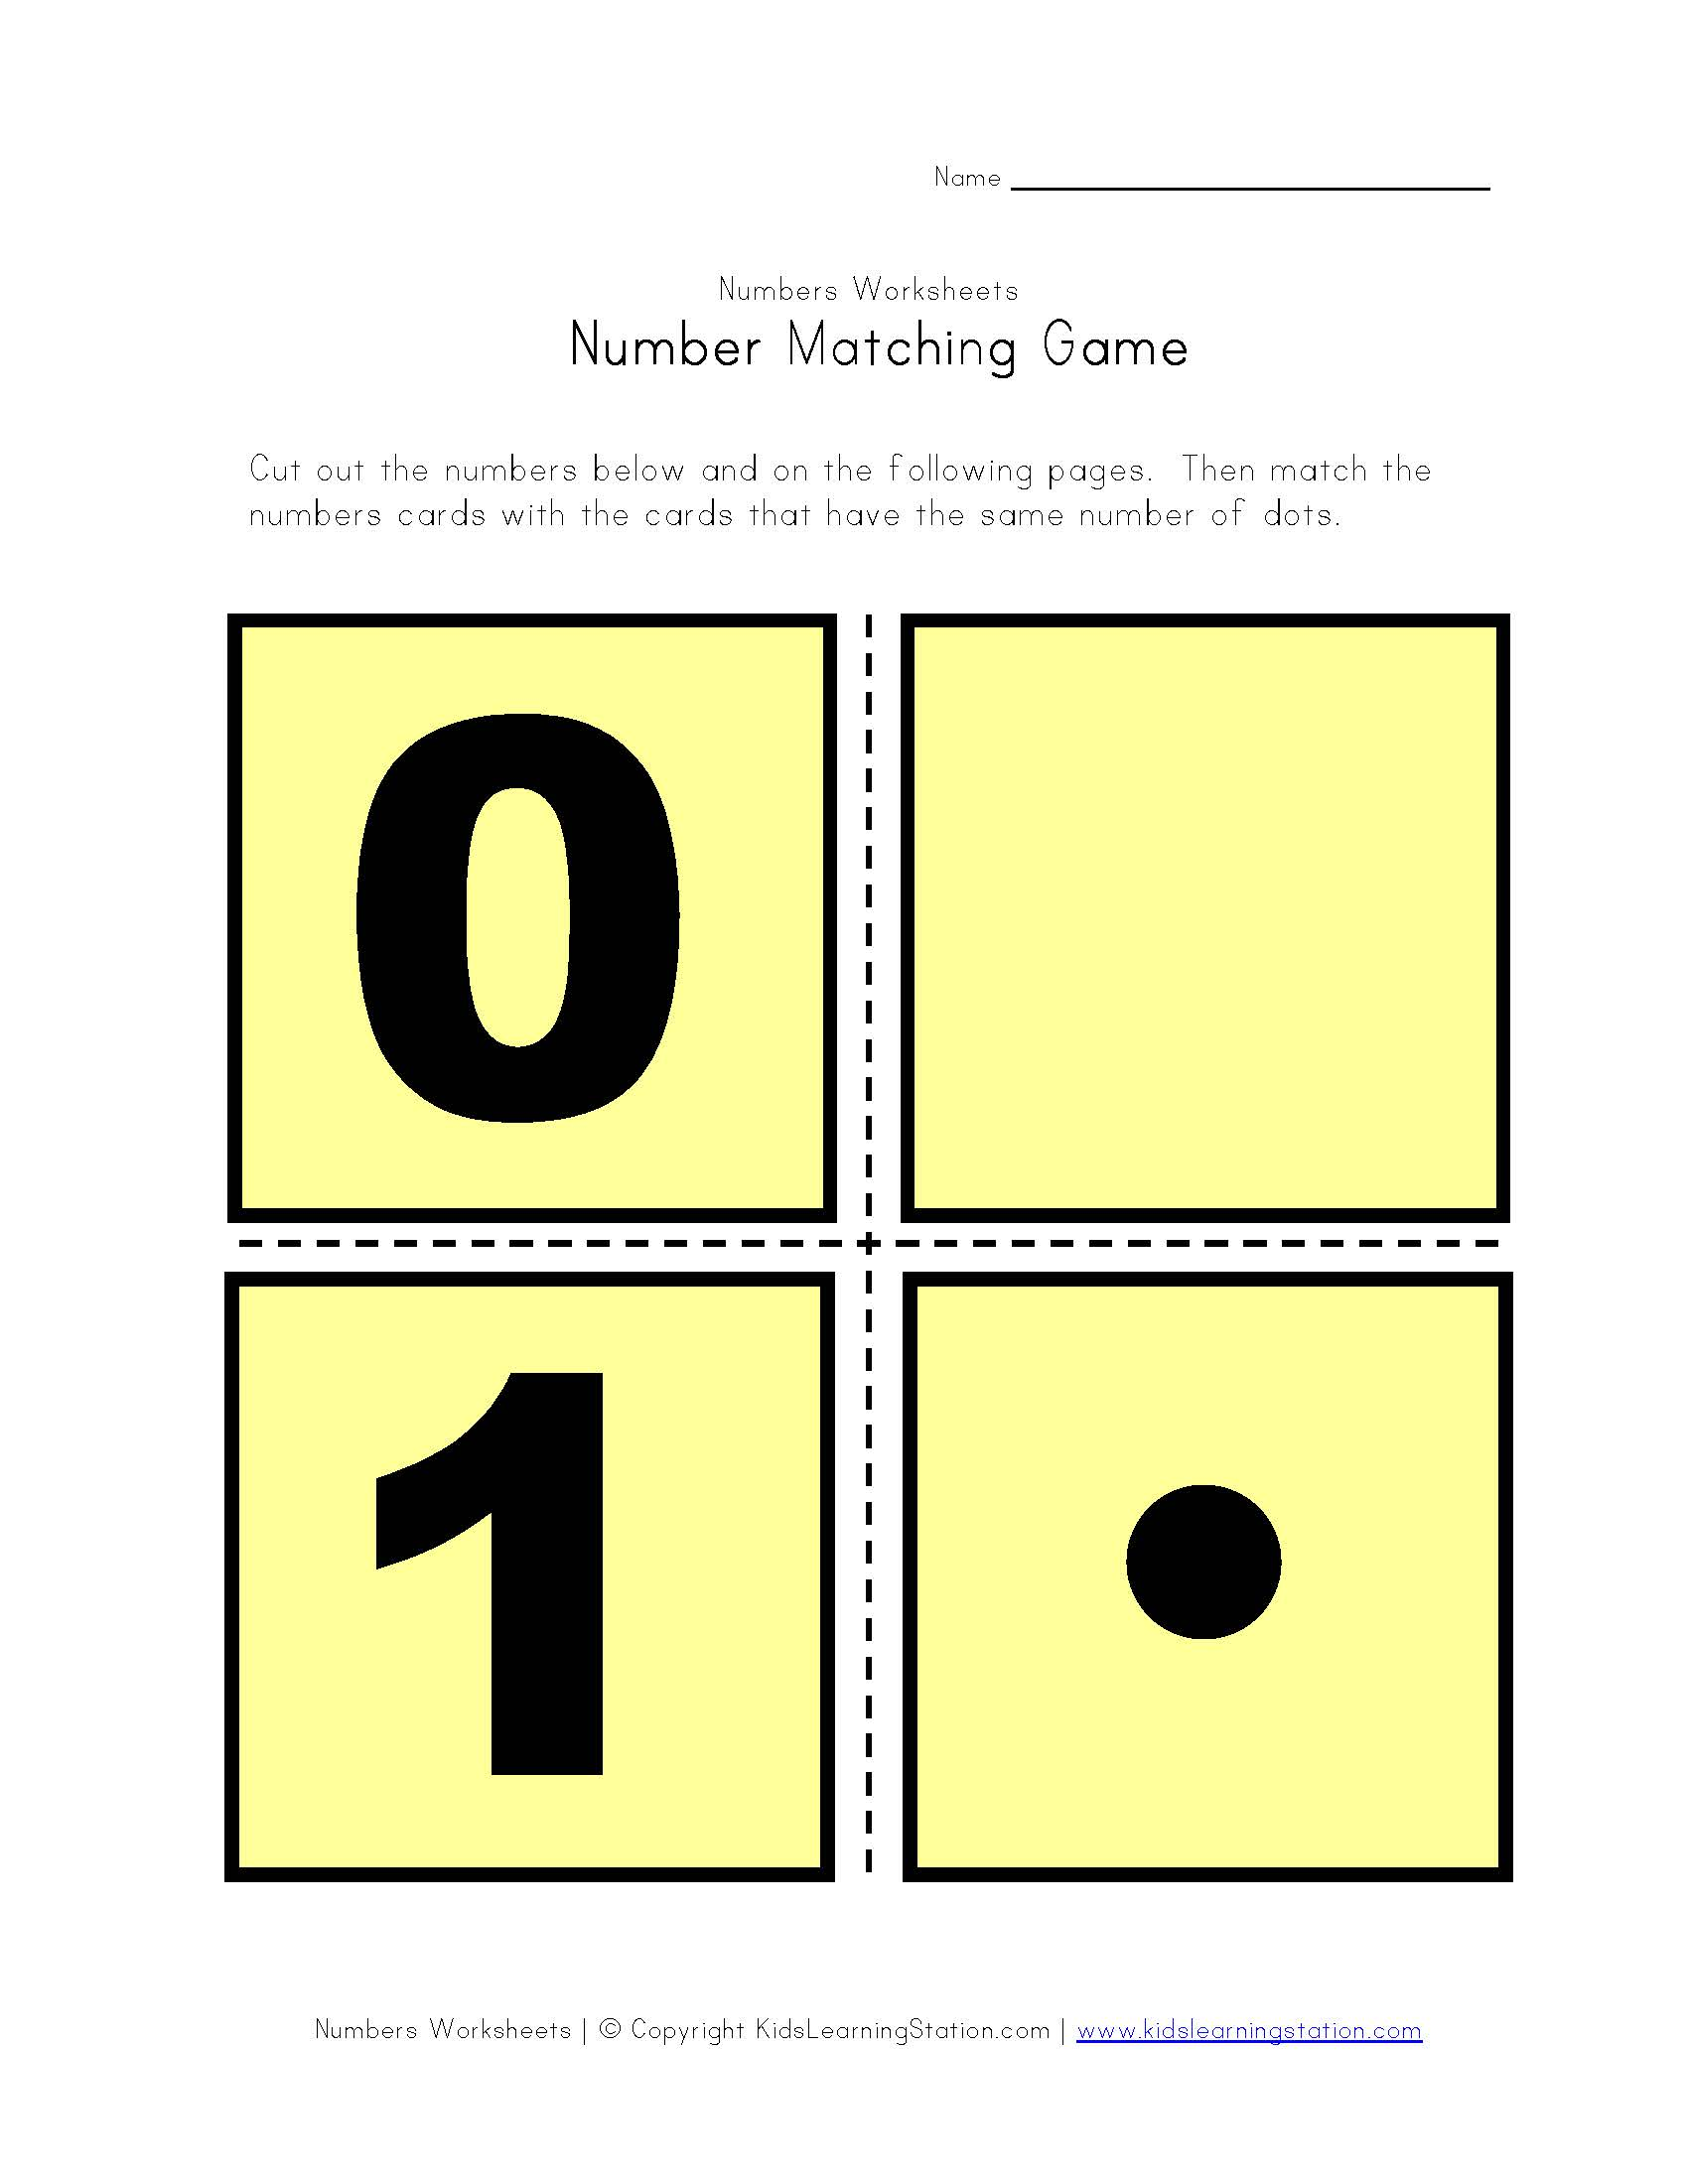 number-matching-game